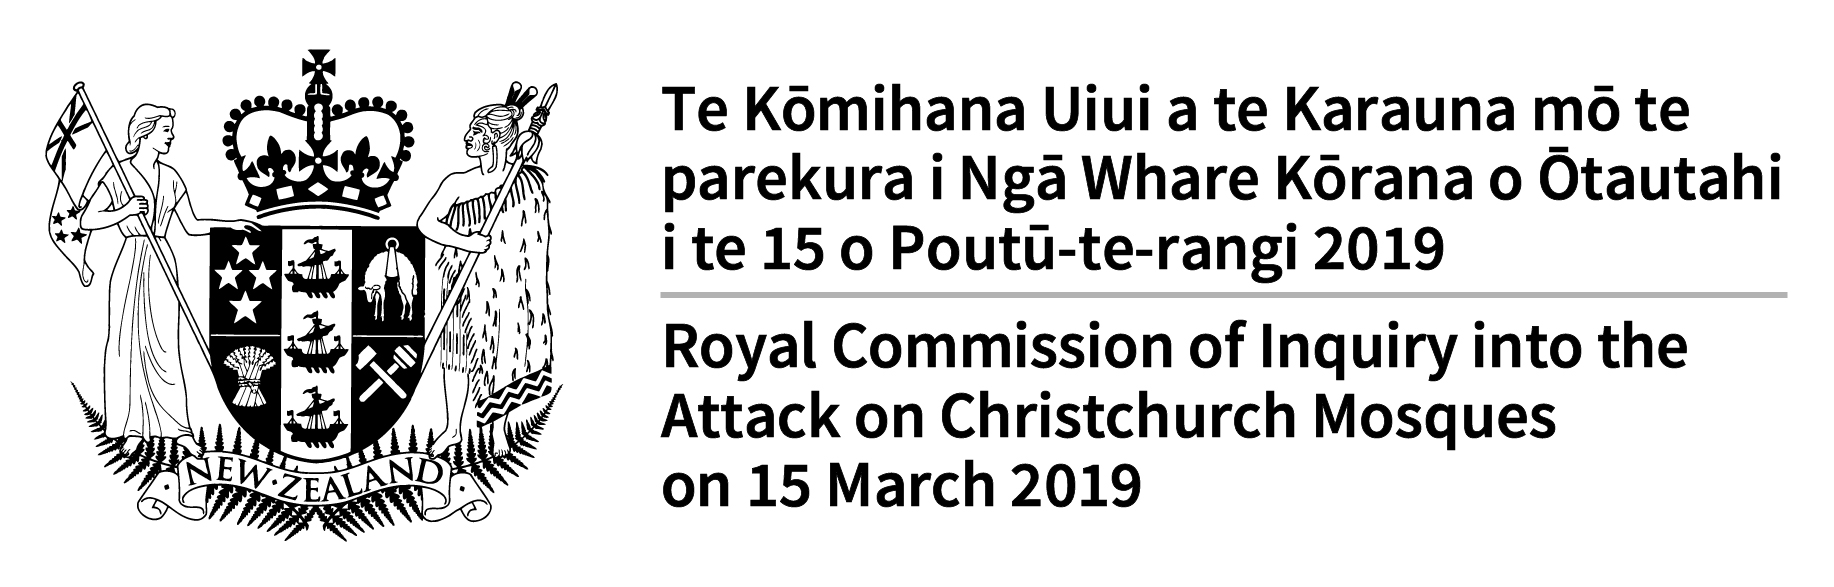 Royal Commission of Inquiry into the Attack on Christchurch Mosques on 15 March 2019